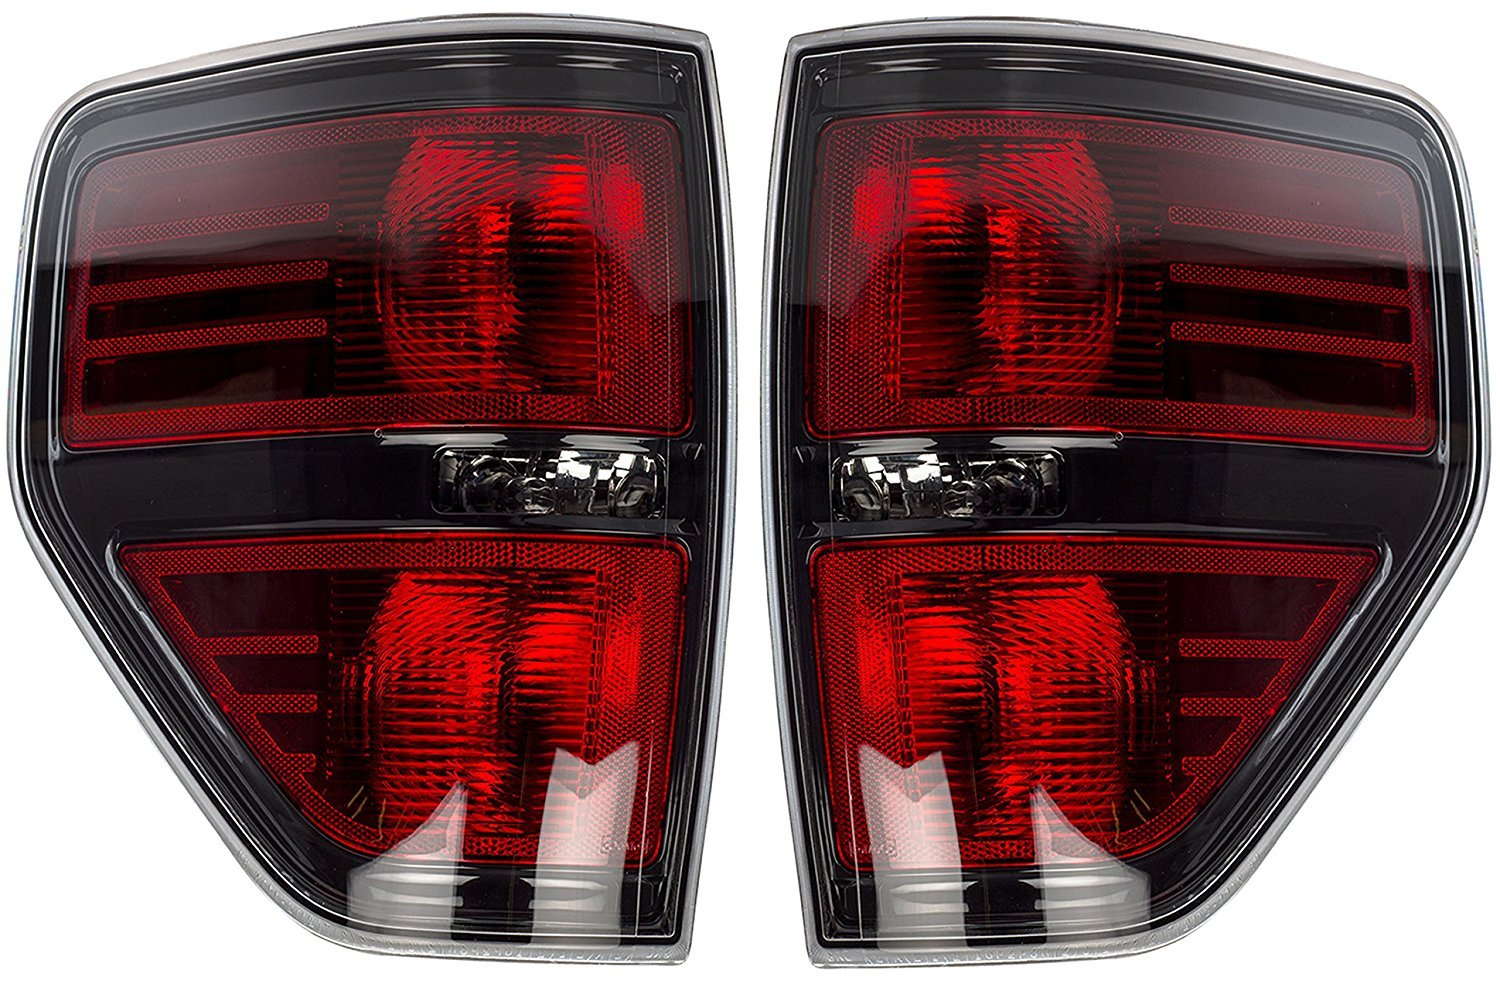 OEM Ford F-150 Black Housing Tail Light Pair - SVT Raptor, Harley Davidson AL3Z13404AE BHBAZUKAZIND3768